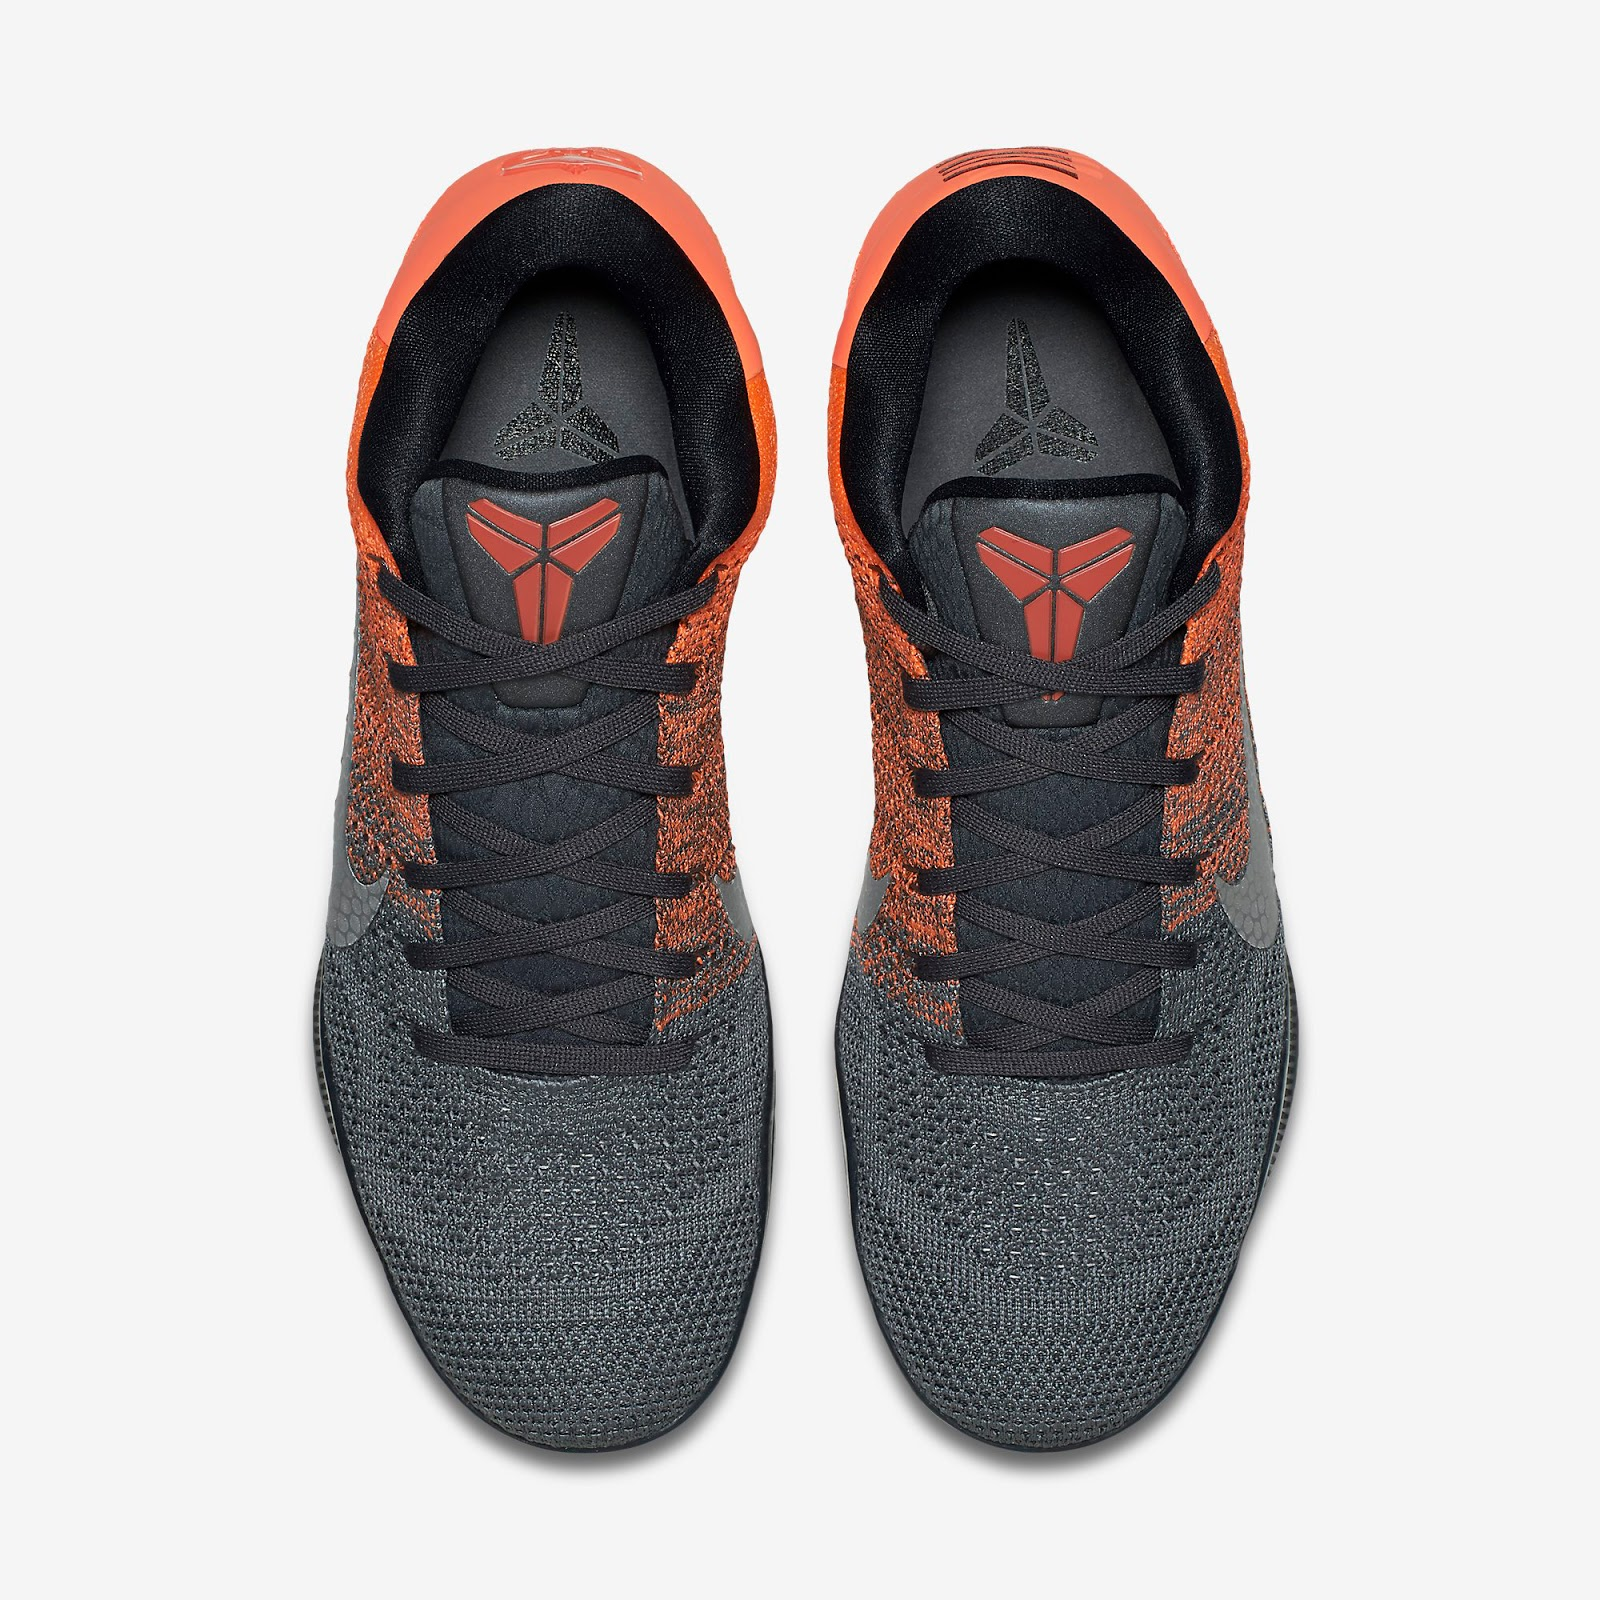 3f4a019c8508 ajordanxi Your  1 Source For Sneaker Release Dates  Nike Kobe 11 ...